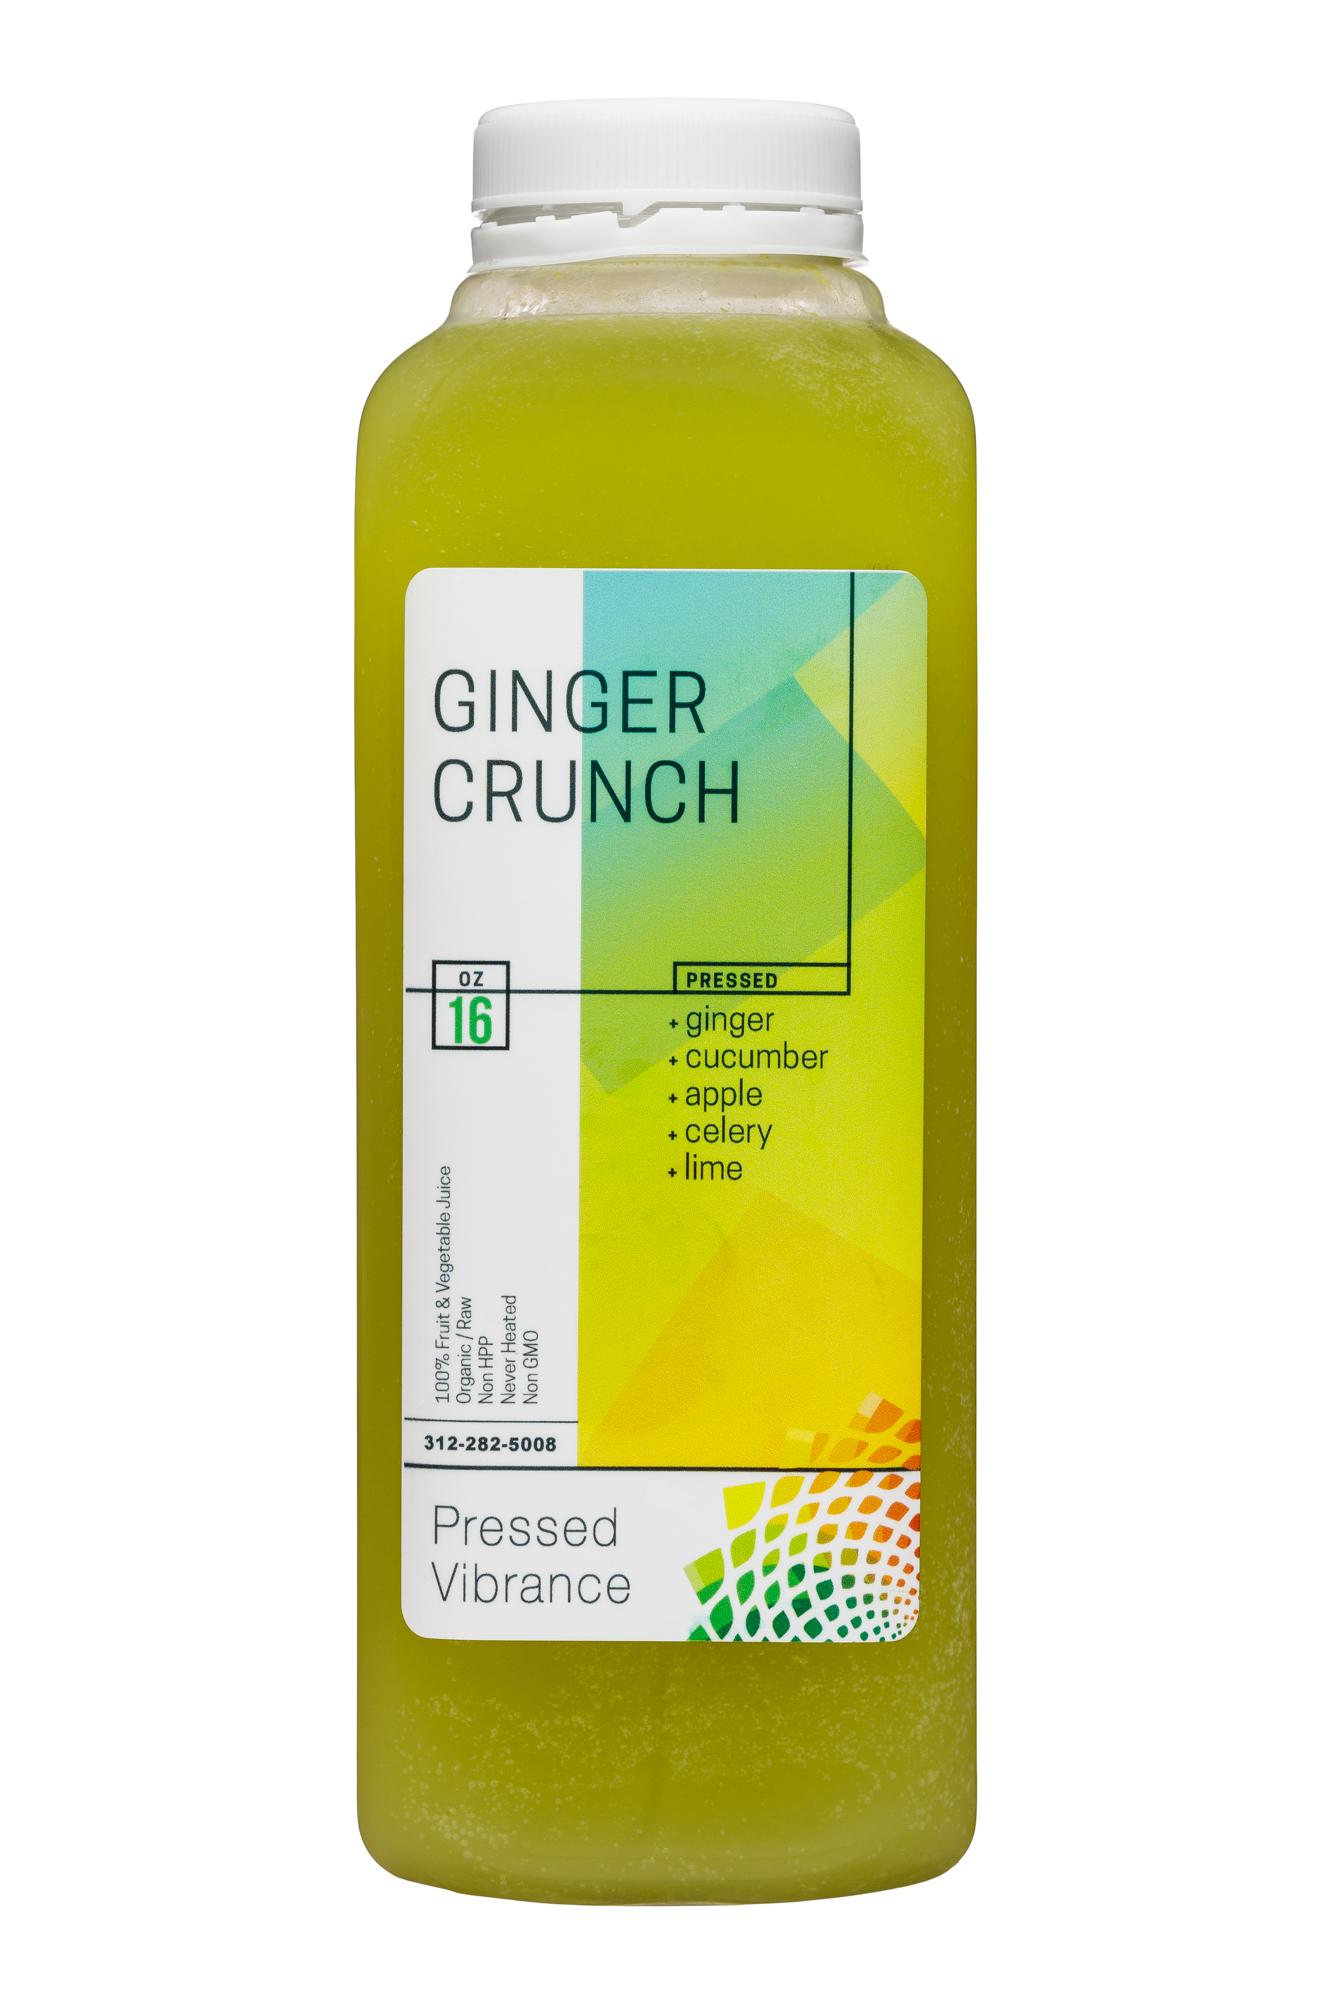 Ginger Crunch